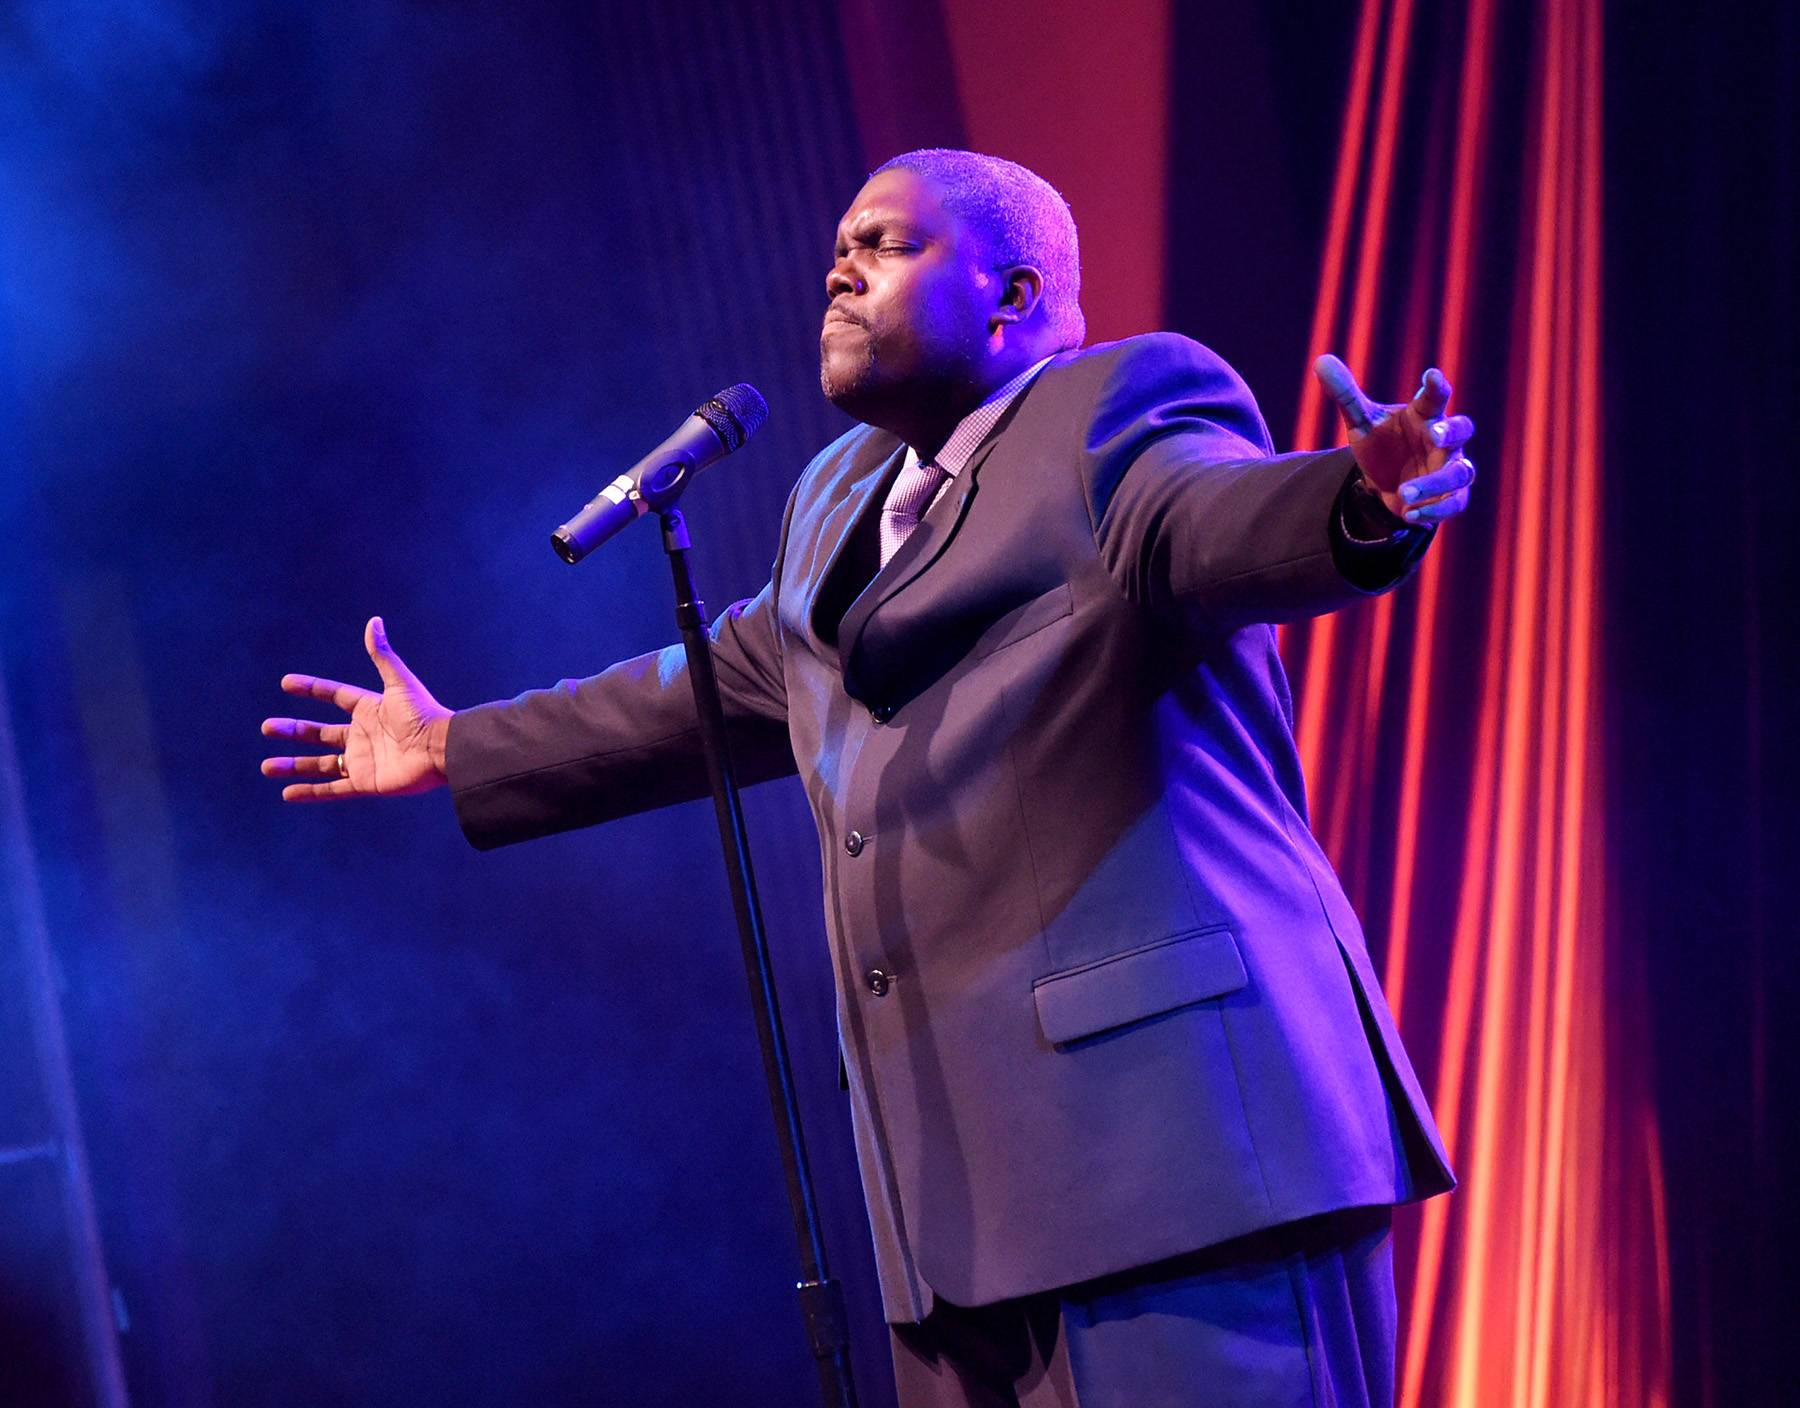 """William McDowell - We are all familiar with the hit track """"Give Myself Away"""" and the unforgettable album Withholding Nothing. Most of us can attest to the gift that God has given William McDowell to tell a honest, heartfelt testimony to Christ through music.(Photo: Rick Diamond/Getty Images for Dove Awards)"""